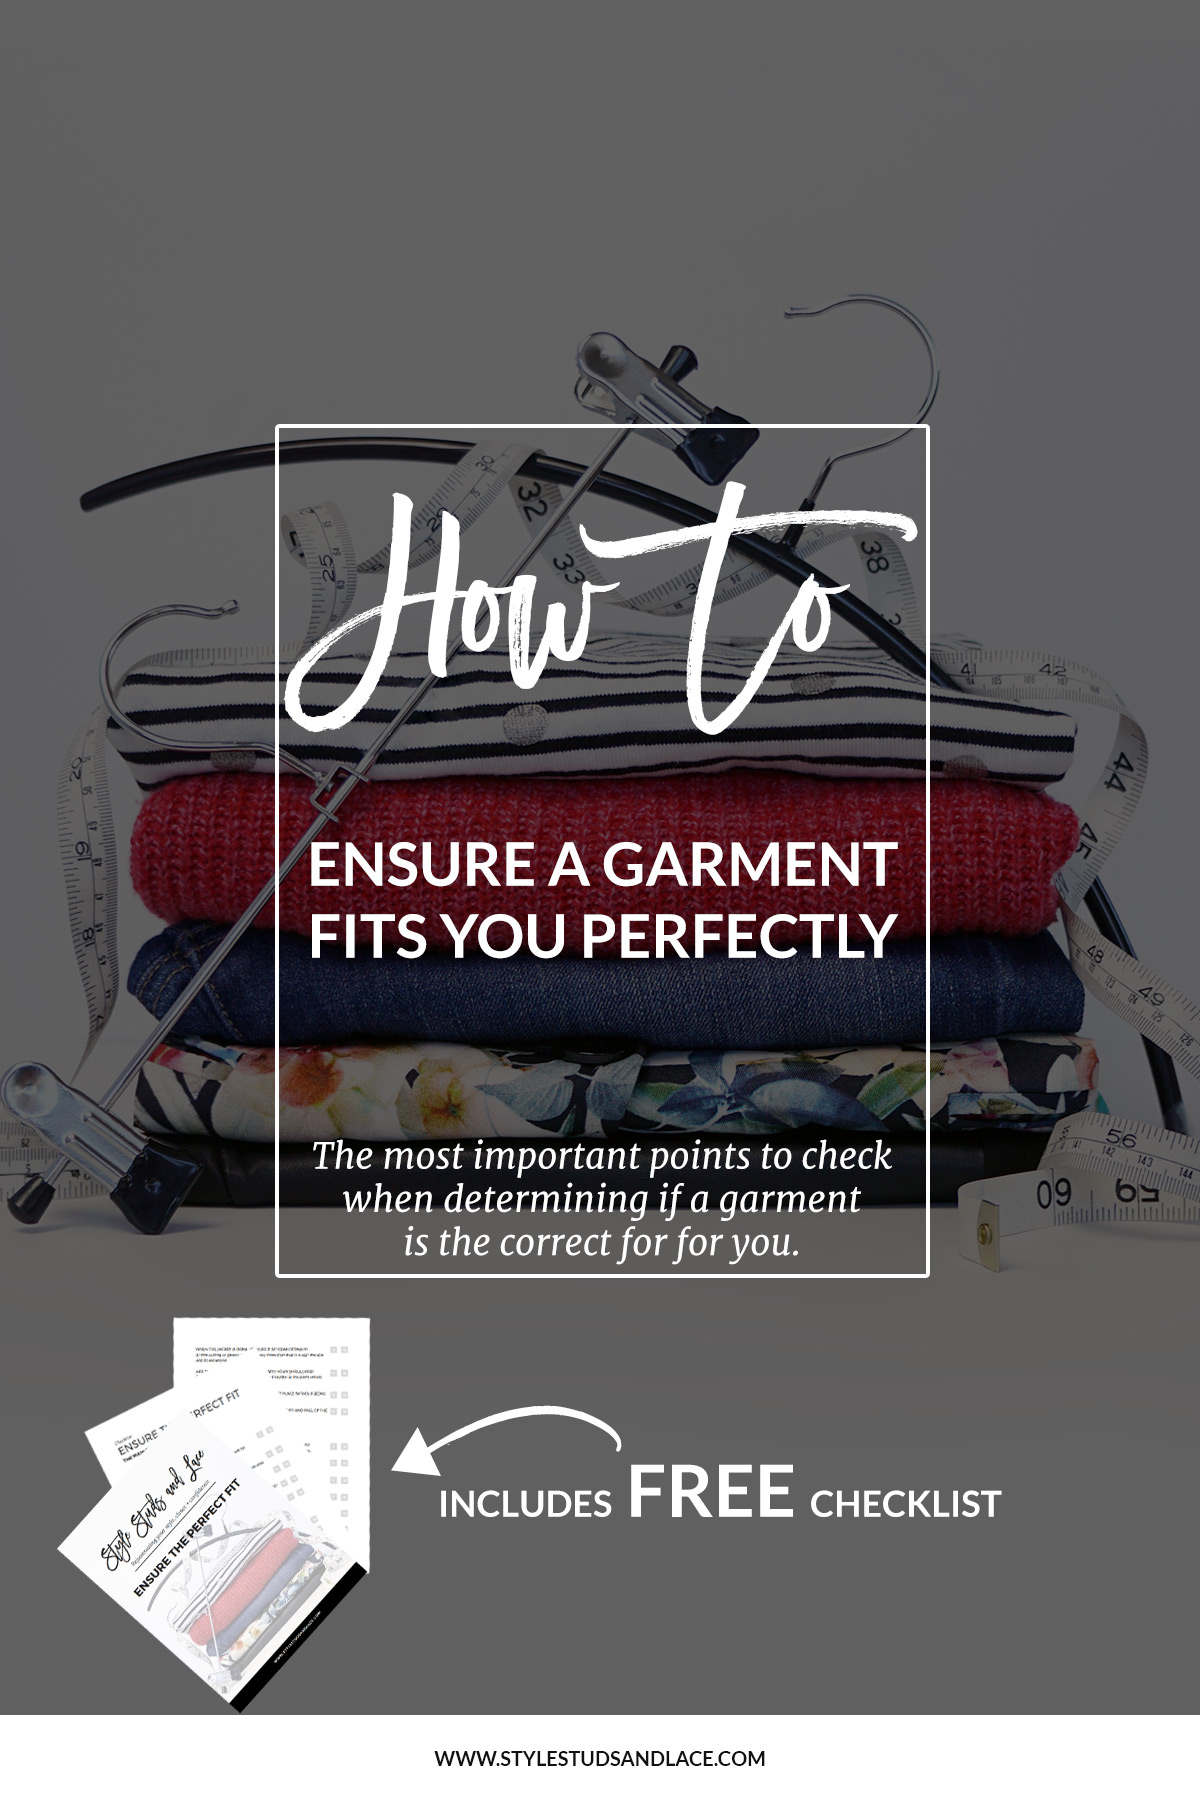 How to ensure the perfect fit | These are the main points to check to ensure sure that a garment fits you in the most flattering way possible. Checklist, guide, fit, size, women, solutions, shopping advice, free download.